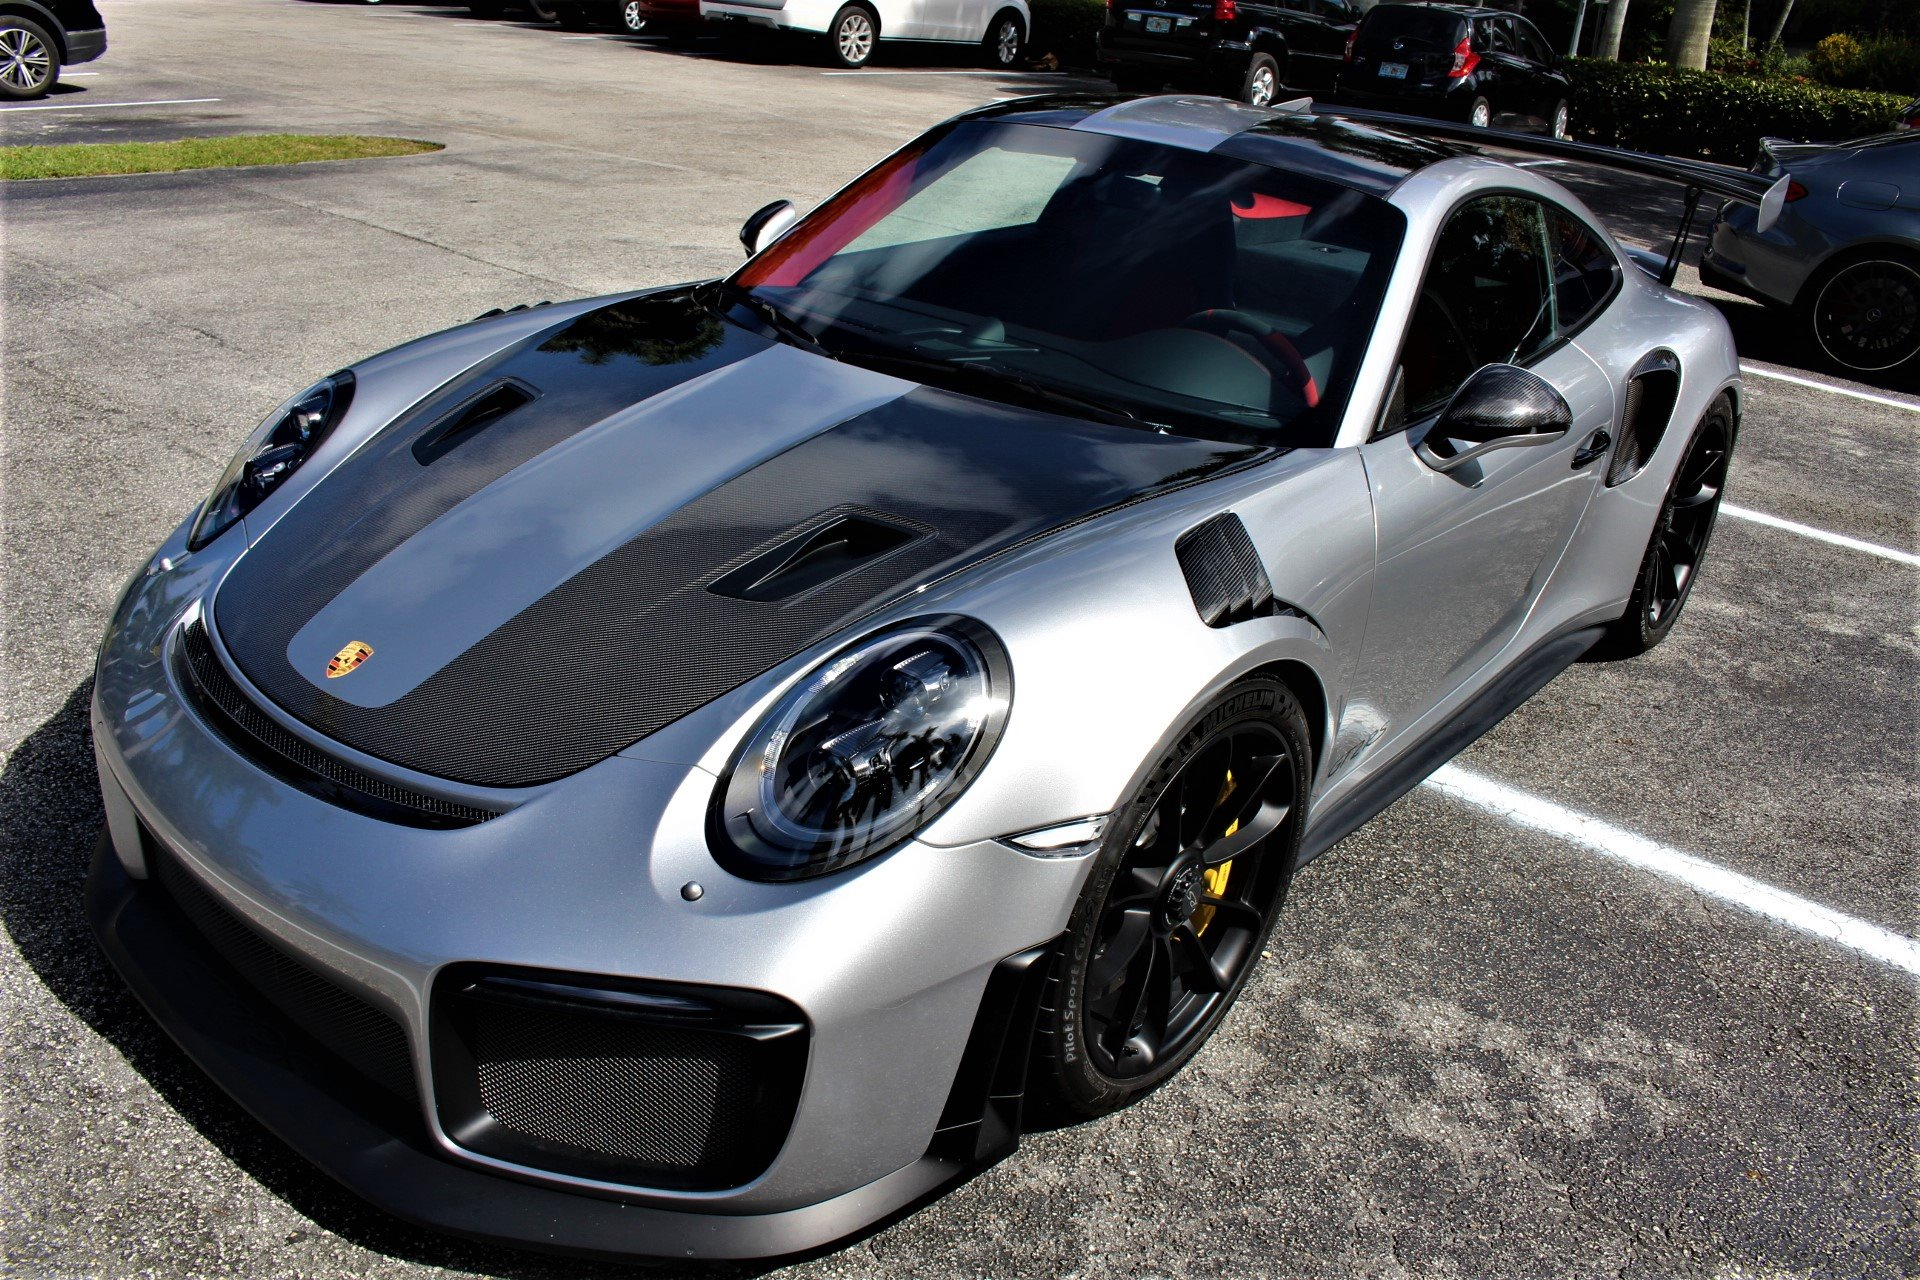 Used 2018 Porsche 911 GT2 RS for sale $305,850 at The Gables Sports Cars in Miami FL 33146 1